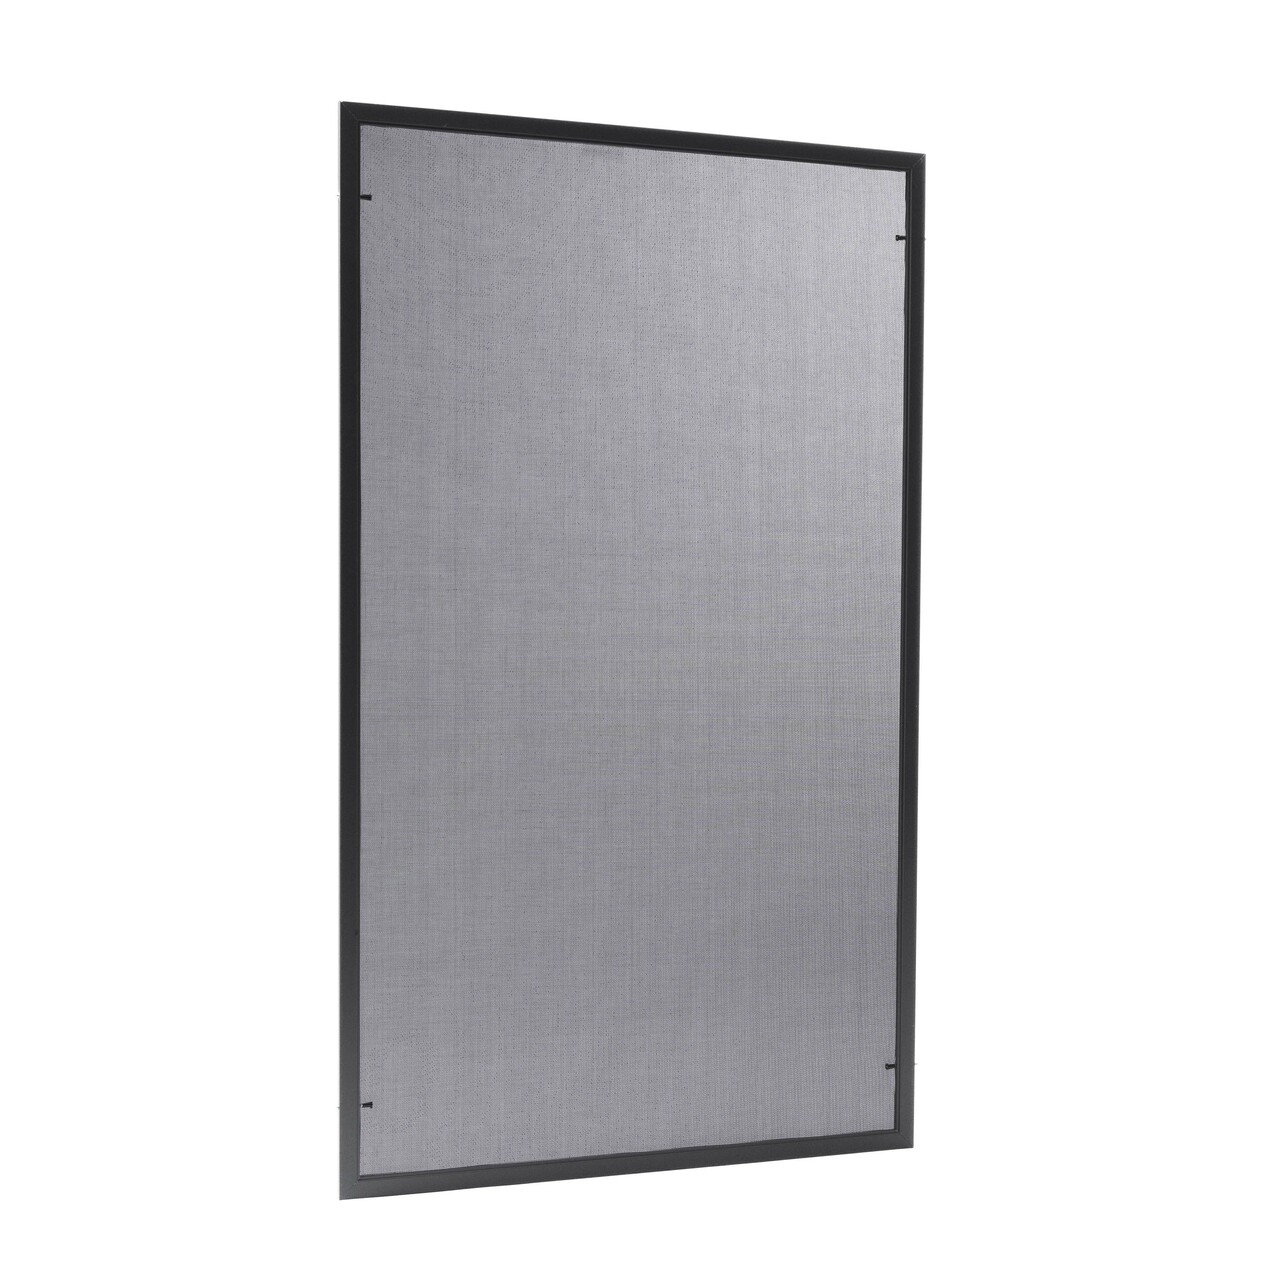 Complete Window Screen With Aluminum Frame